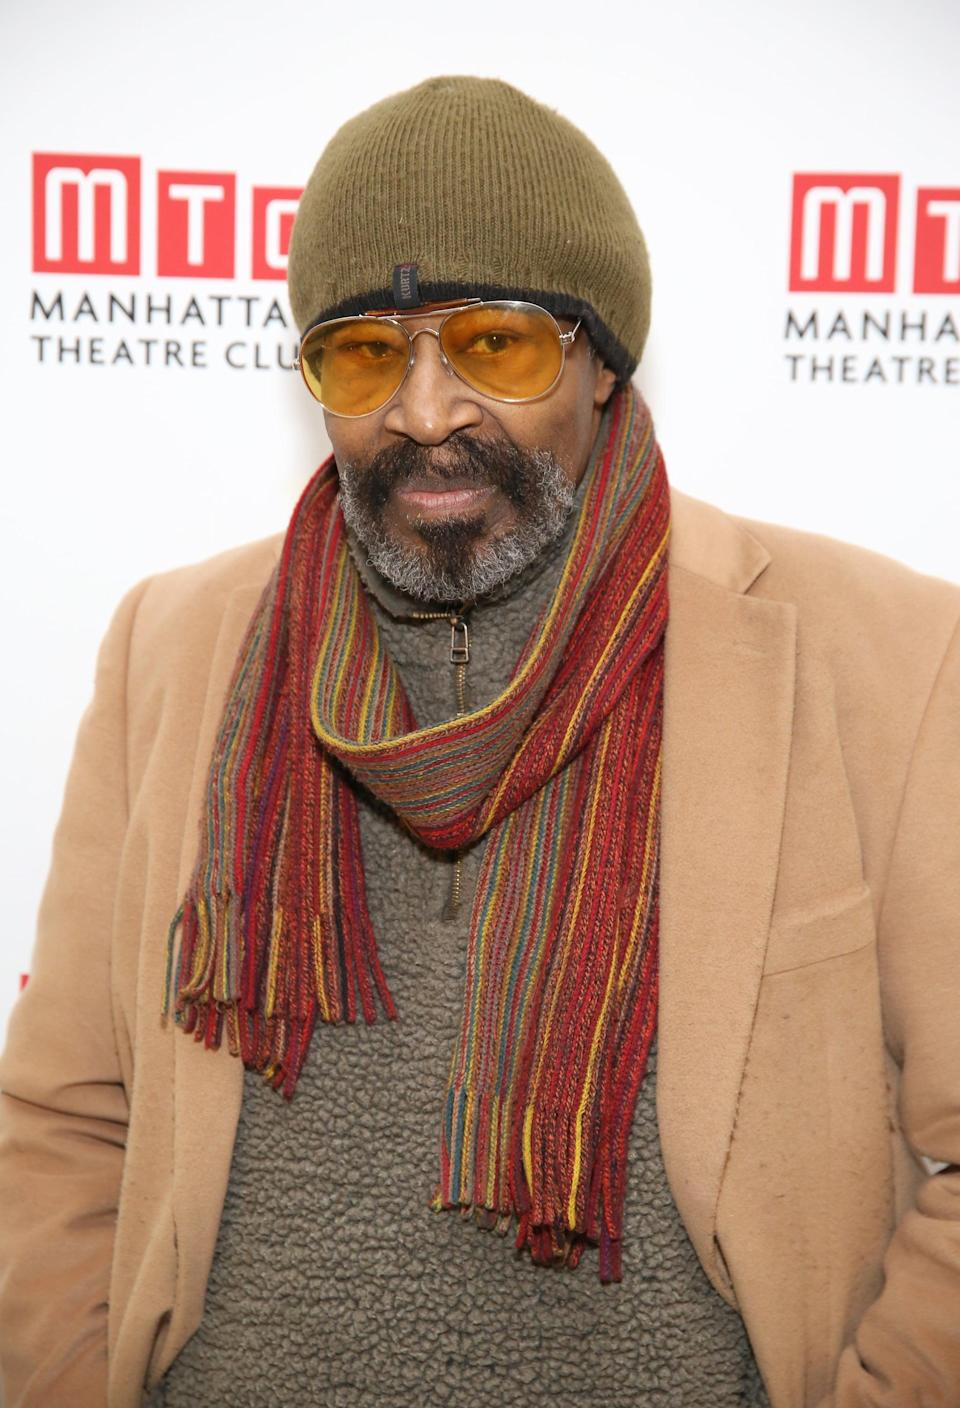 "<p>The Tony-nominated actor, who appeared in plays such as <strong>Two Trains Running</strong> and <strong>Jitney</strong>, as well as Spike Lee film <strong>Chi-Raq</strong>, <a href=""https://www.hollywoodreporter.com/news/anthony-chisholm-tony-nominated-stage-and-screen-actor-dies-at-77"" class=""link rapid-noclick-resp"" rel=""nofollow noopener"" target=""_blank"" data-ylk=""slk:died in October"">died in October</a>. He was 77.</p>"